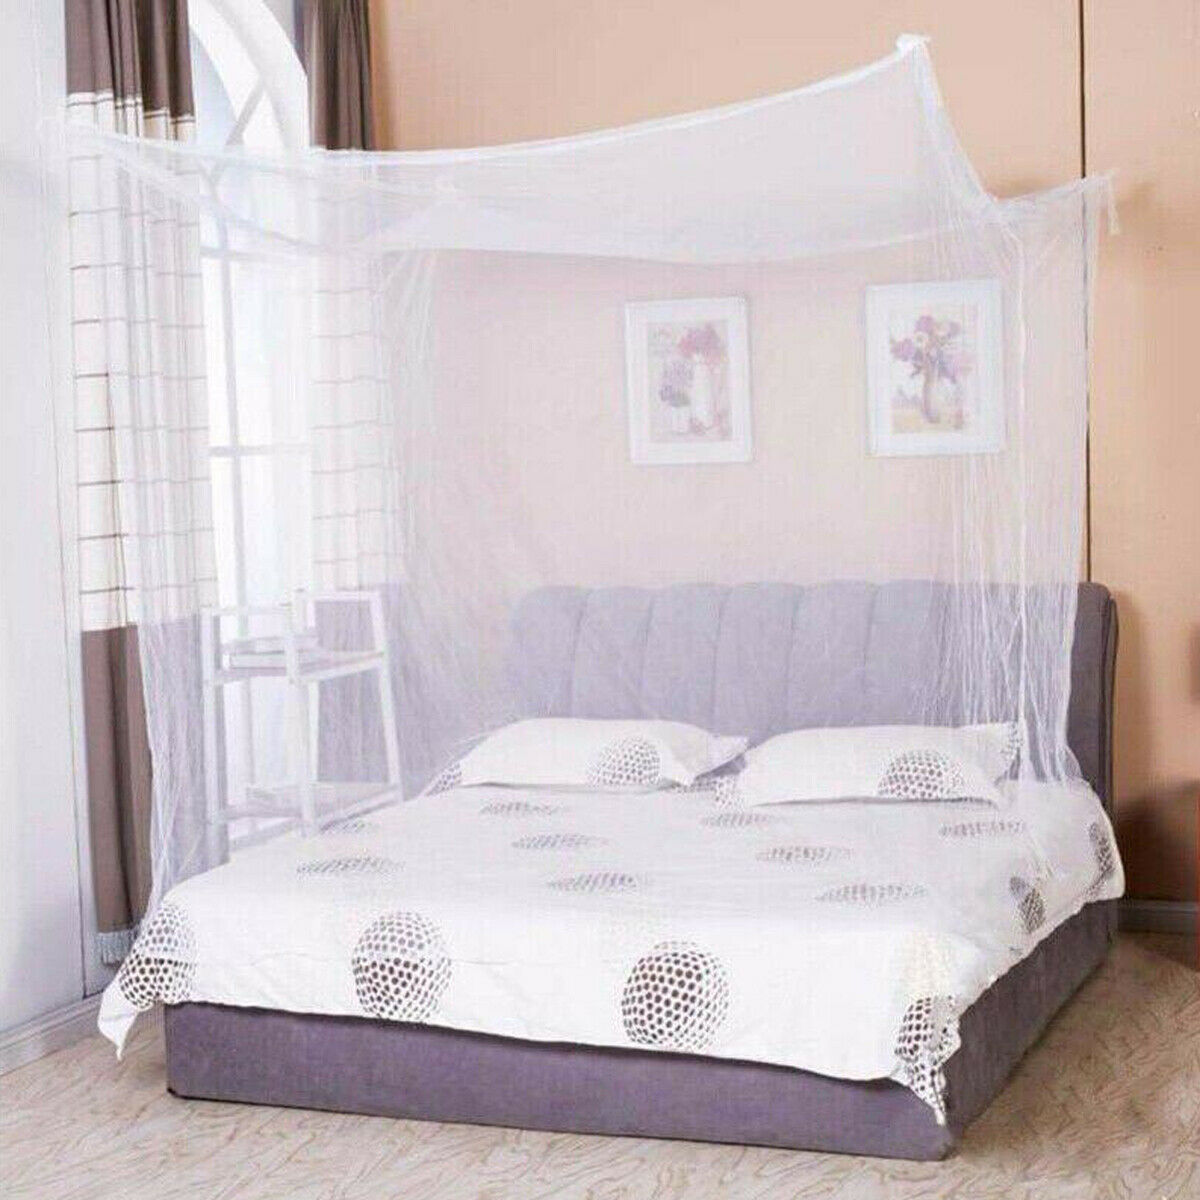 4 Corner Mosquito Net Mesh Canopy Insect Queen King Size Netting Curtain Dome